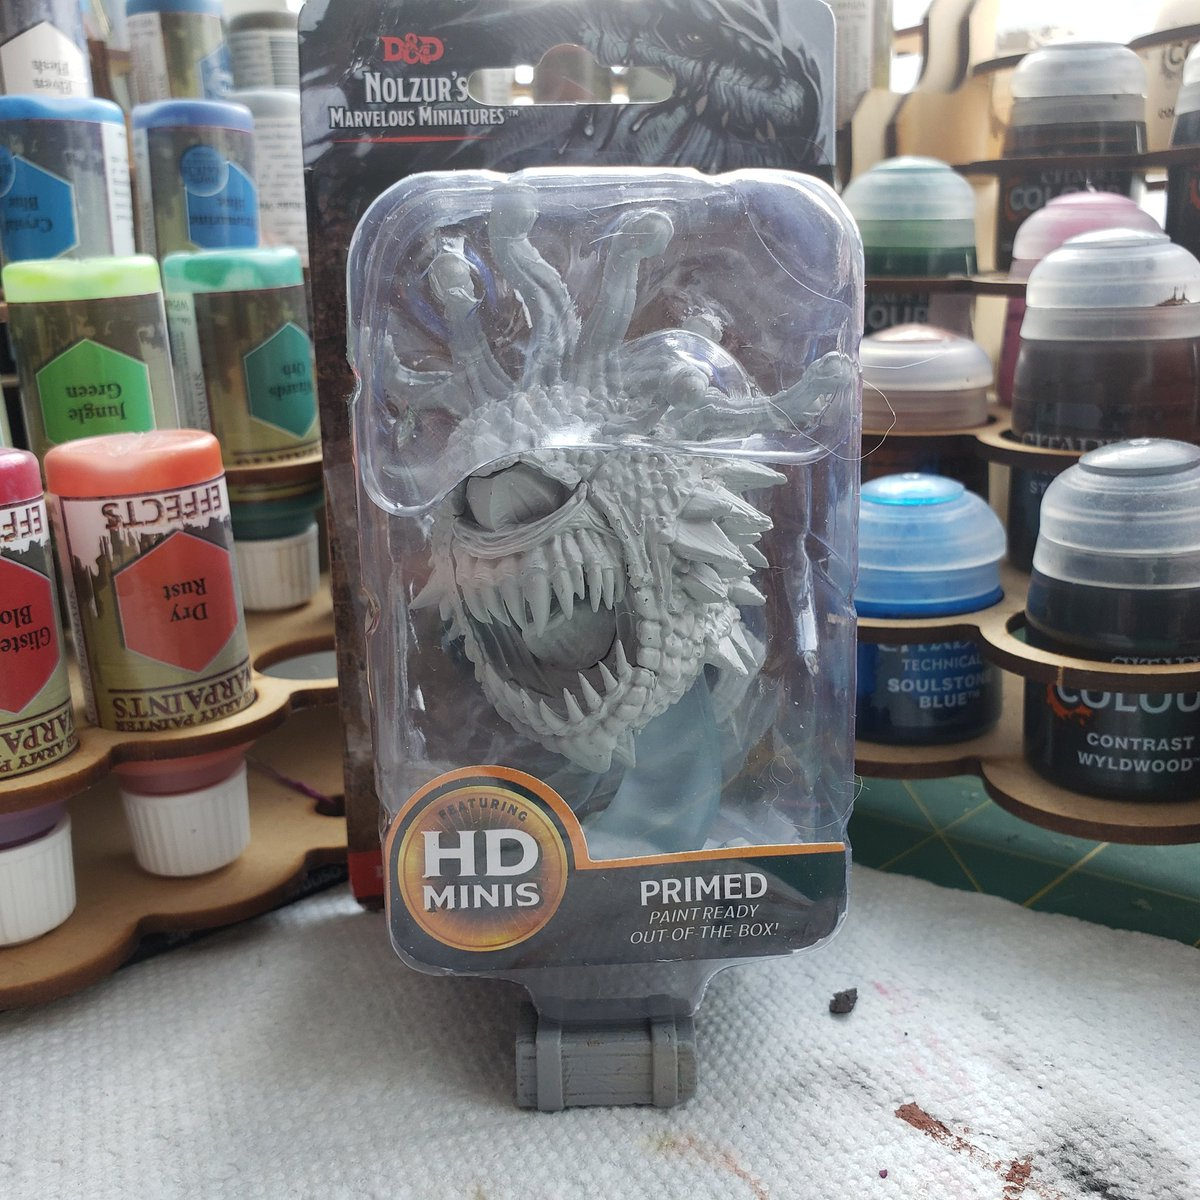 I managed to get hold of a beholder mini, so it's time for a sub drive on https://t.co/V4uvxqAAbw!   The goal is 25 subs (I want emote slots). Once hit, I'll paint The Rainbowholder for a winner!  (Draw via discord for transparency)   #minipainting #miniatures #ttrpg #beholder https://t.co/FI8vtcREyt